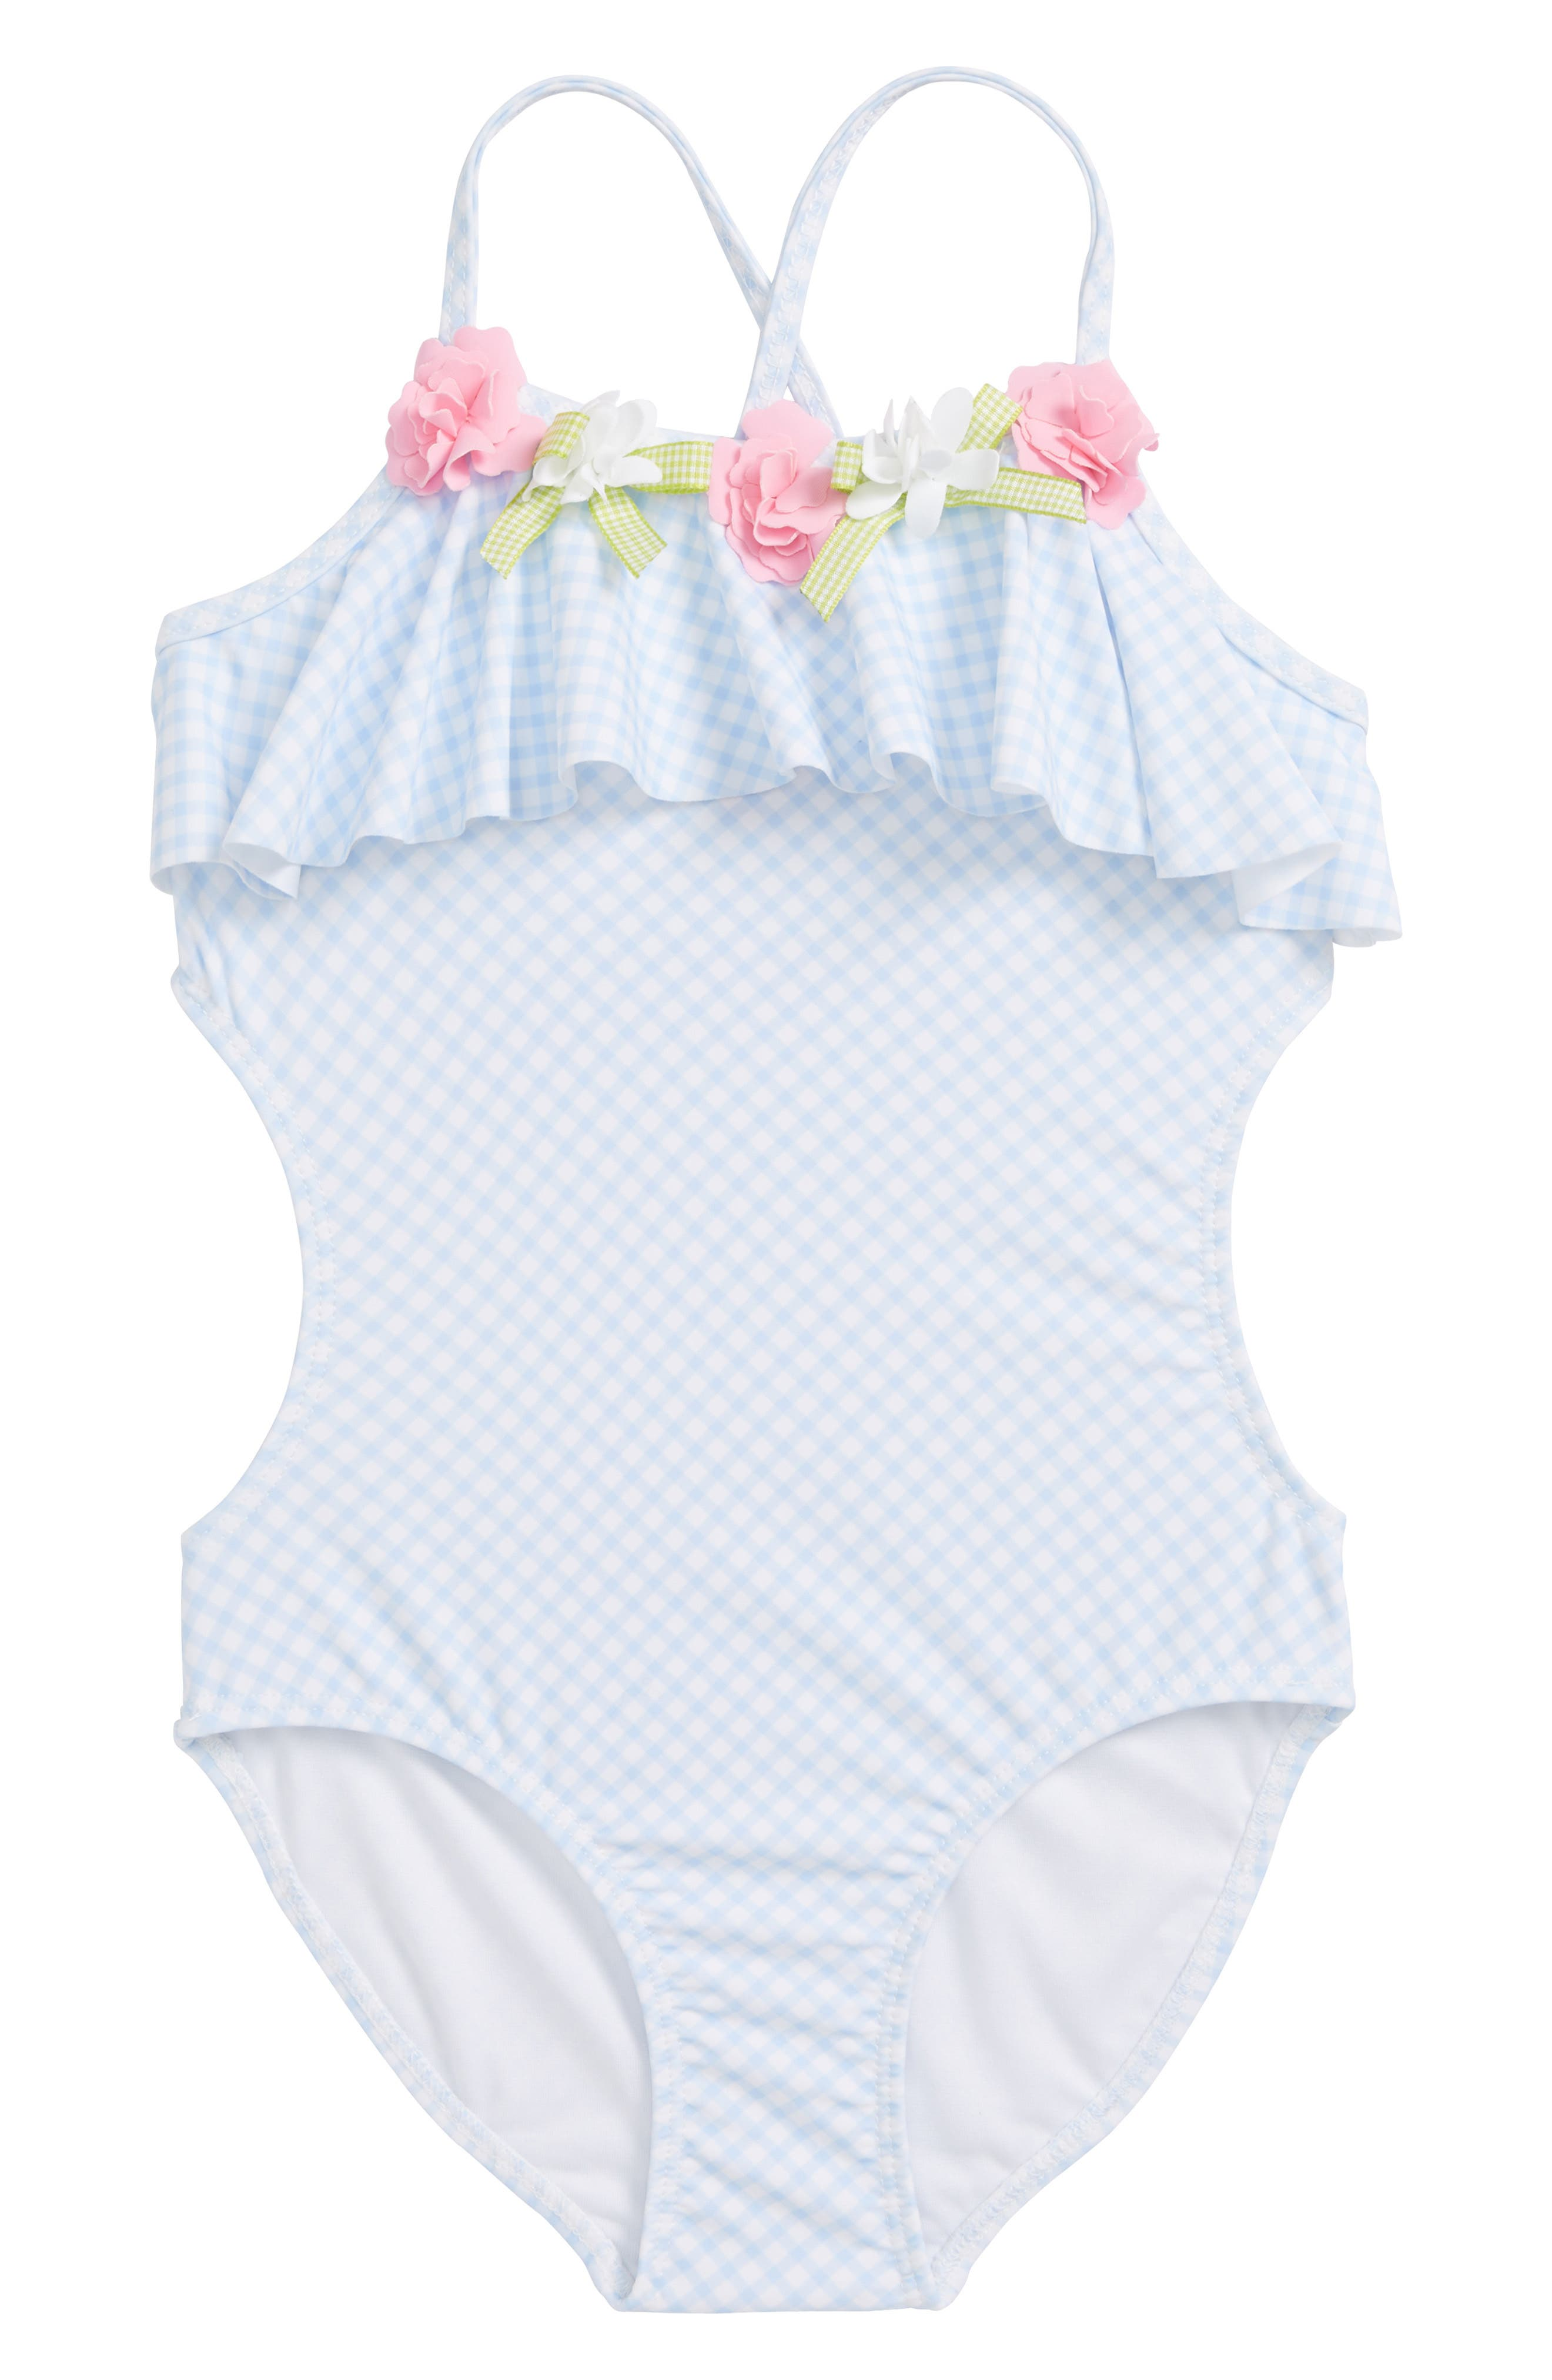 Alternate Image 1 Selected - Kate Mack Gingham One-Piece Swimsuit (Toddler Girls & Little Girls)